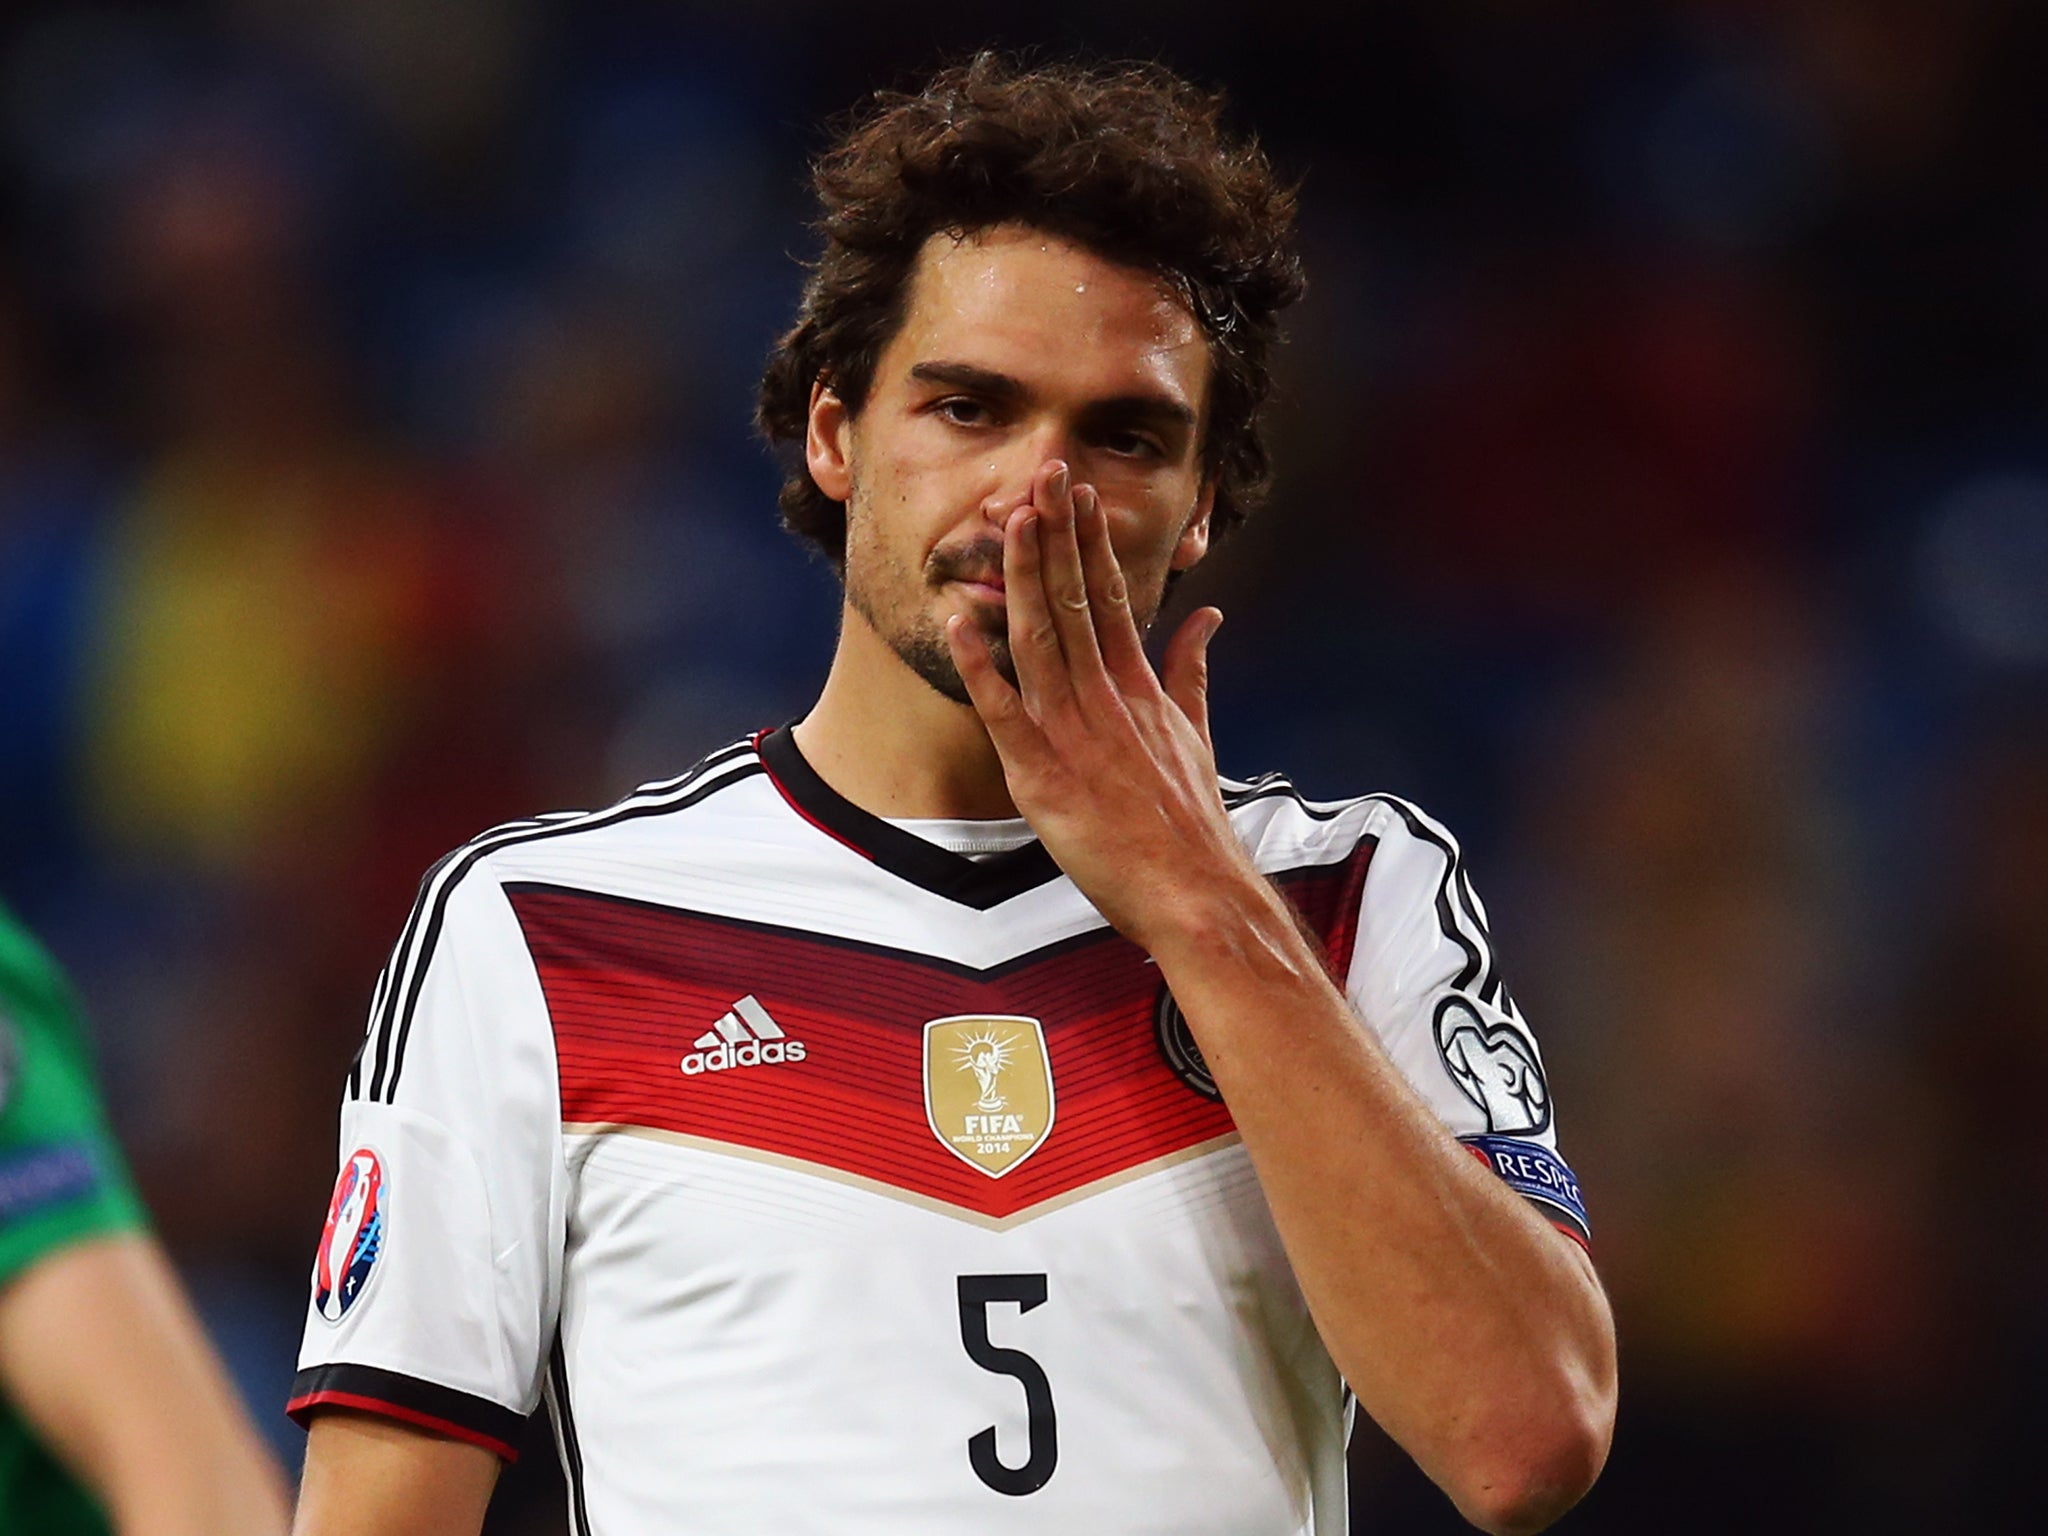 Manchester United and Arsenal tar Mats Hummels out injured for